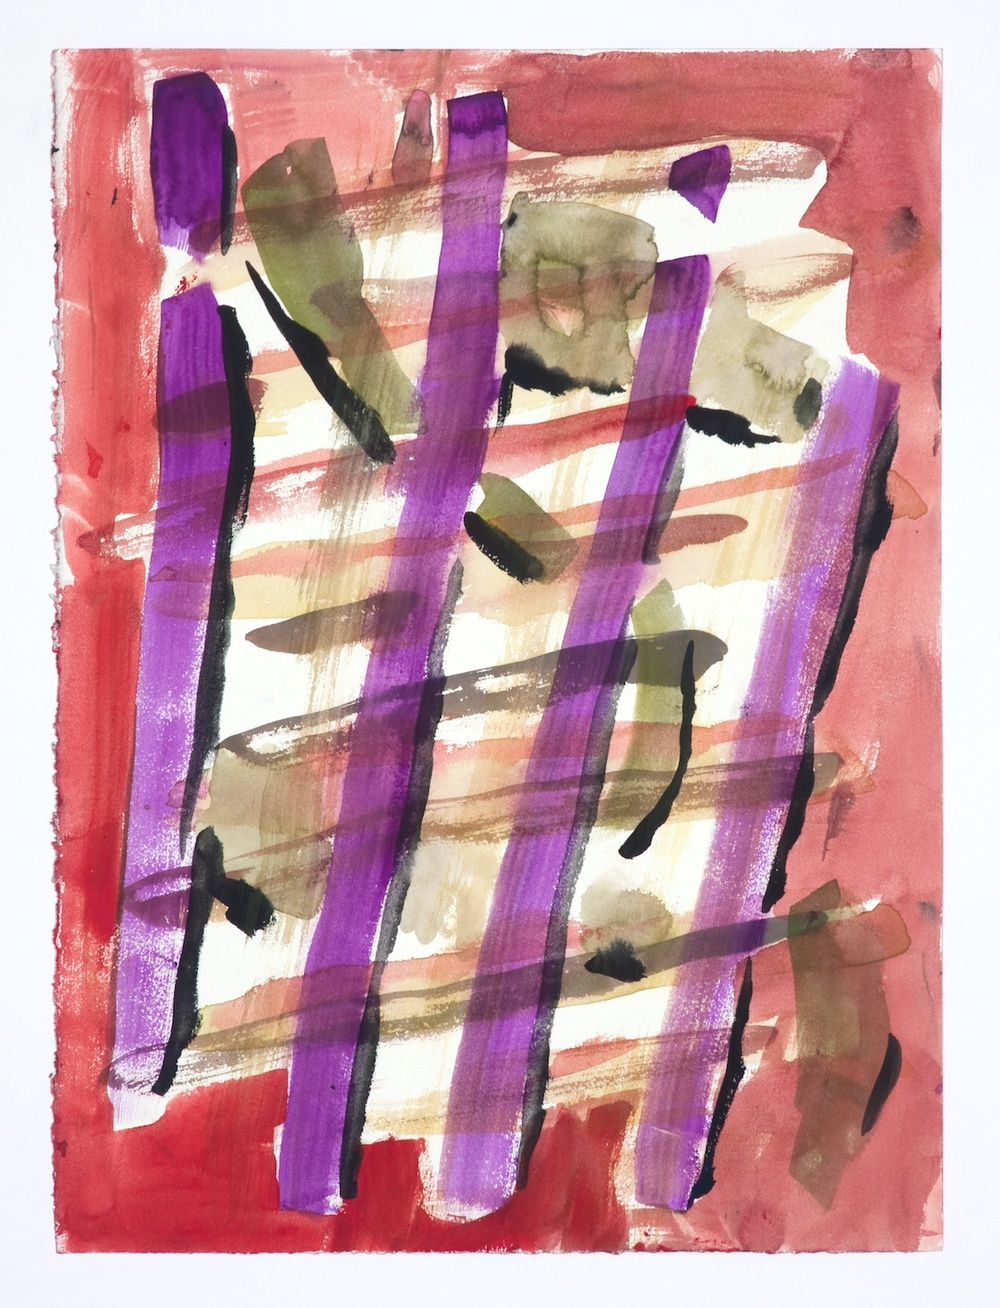 Jon Pestoni  Untitled  2009 Gouache on paper 15h x 11 ¼w in JP084